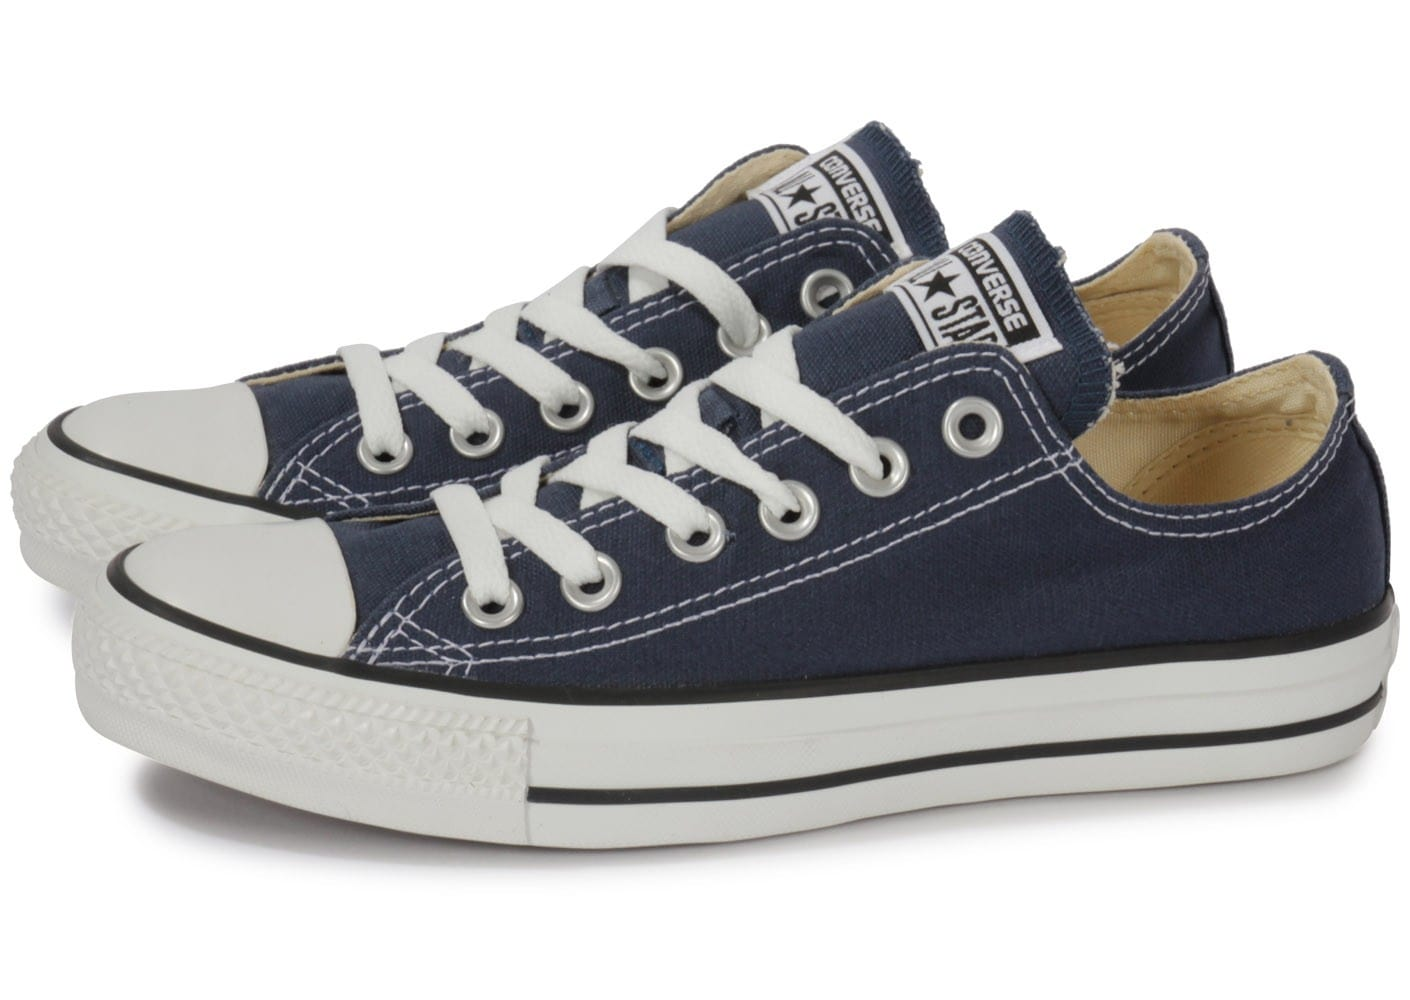 Converse Chuck Taylor All Star low bleu marine - Chaussures ...